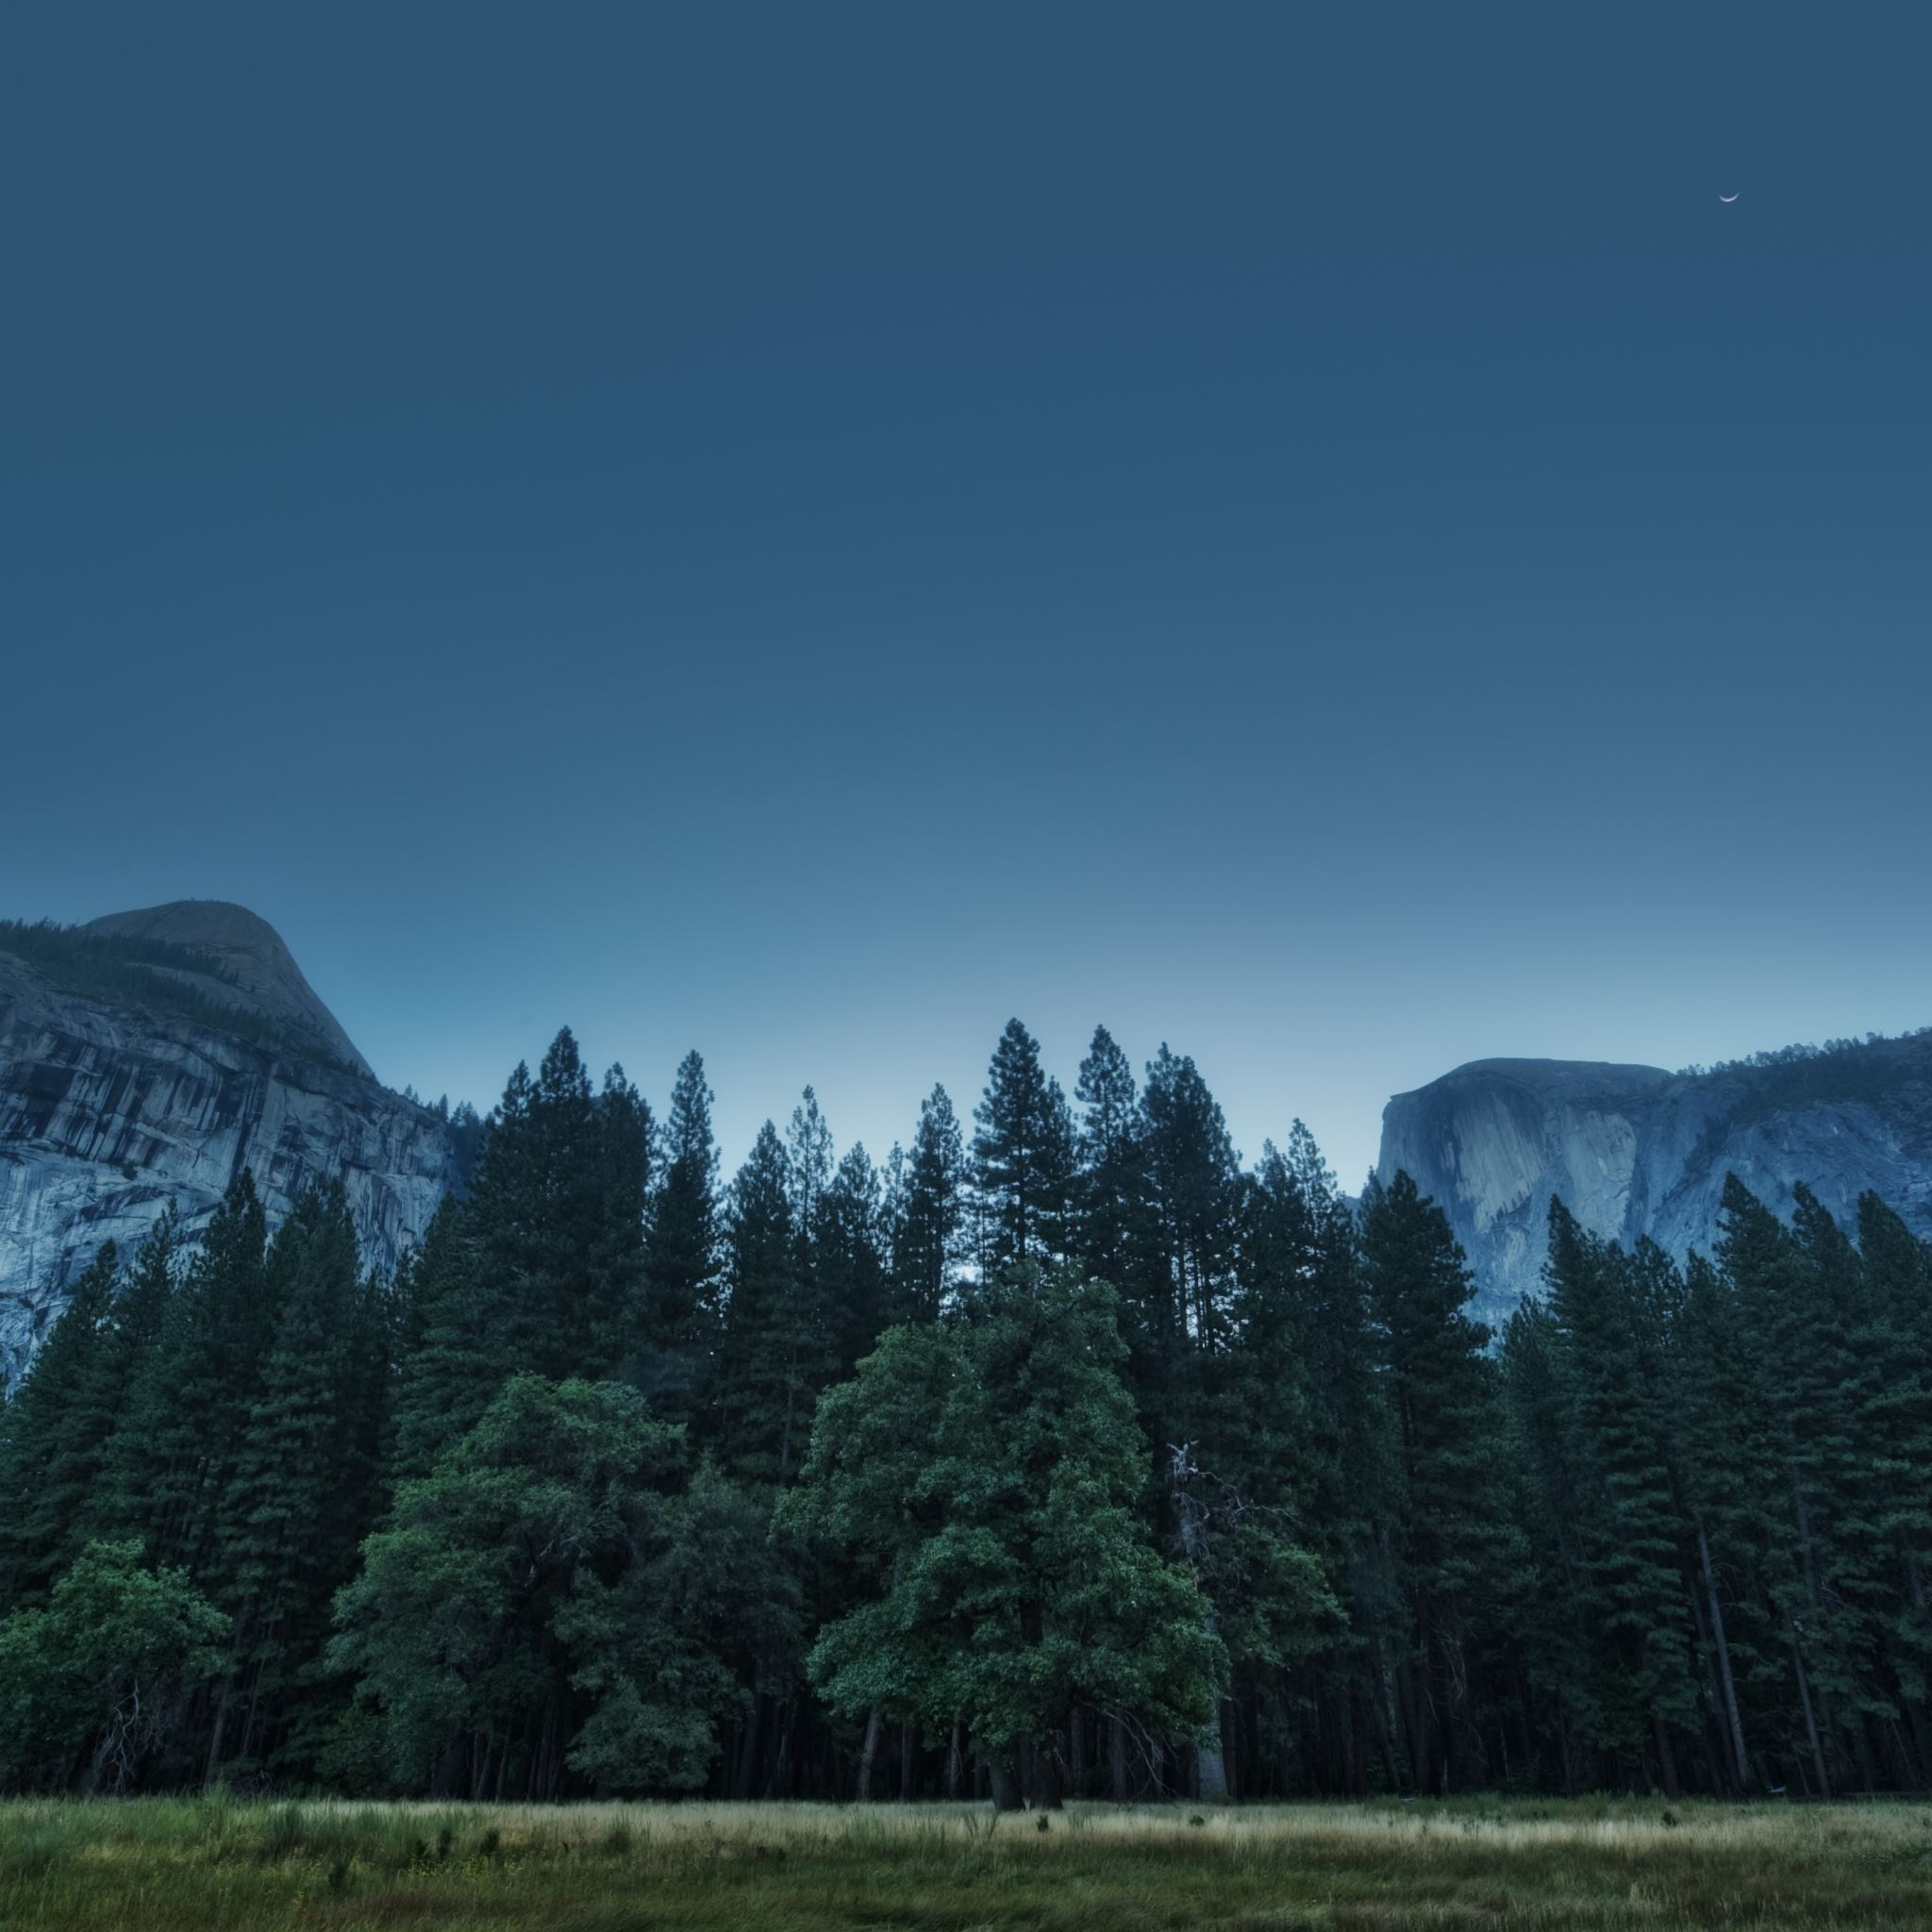 Trees Forest Mountains USA California Yosemite Valley National Park iPad Air wallpaper